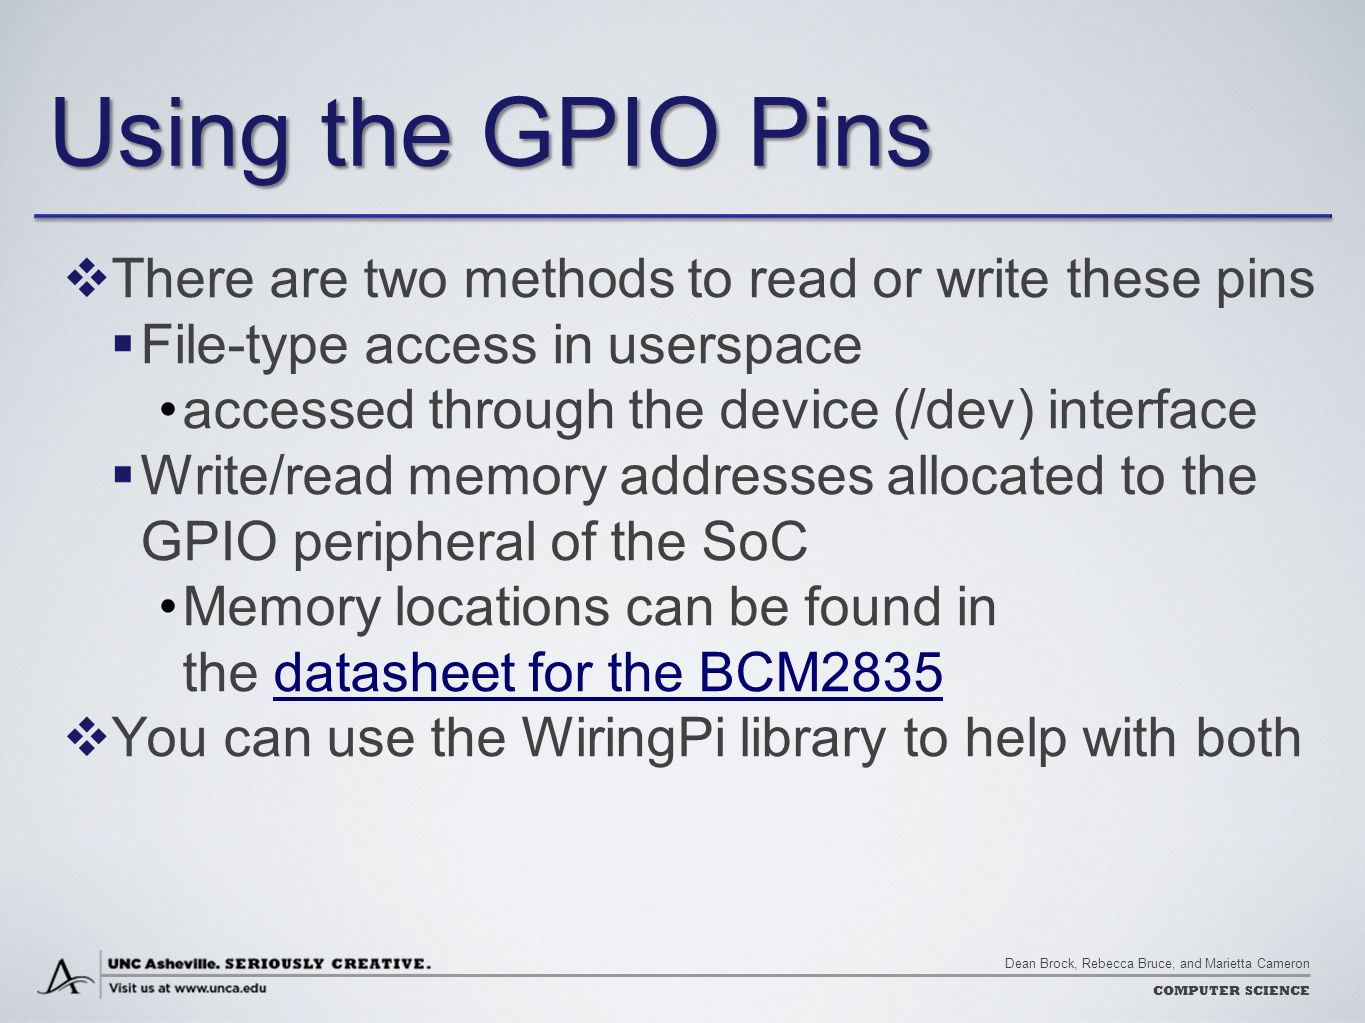 Pleasing Wiringpi Gpio Pinout Wiring Library Wiring Cloud Philuggs Outletorg